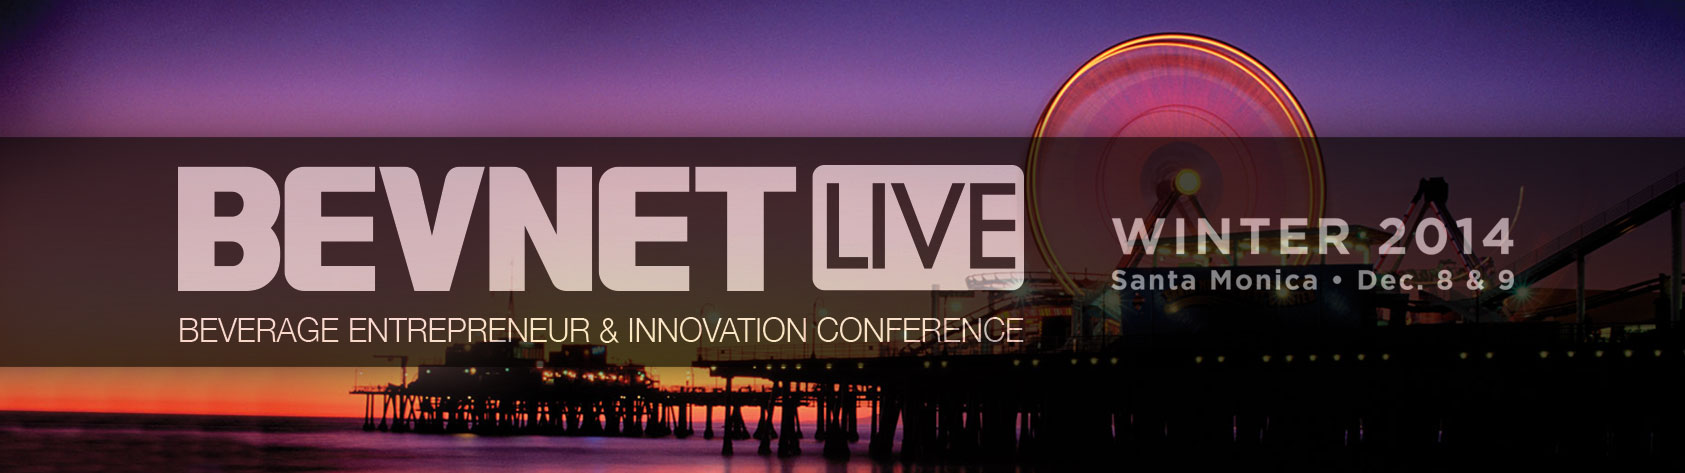 BevNET Live Winter 2014